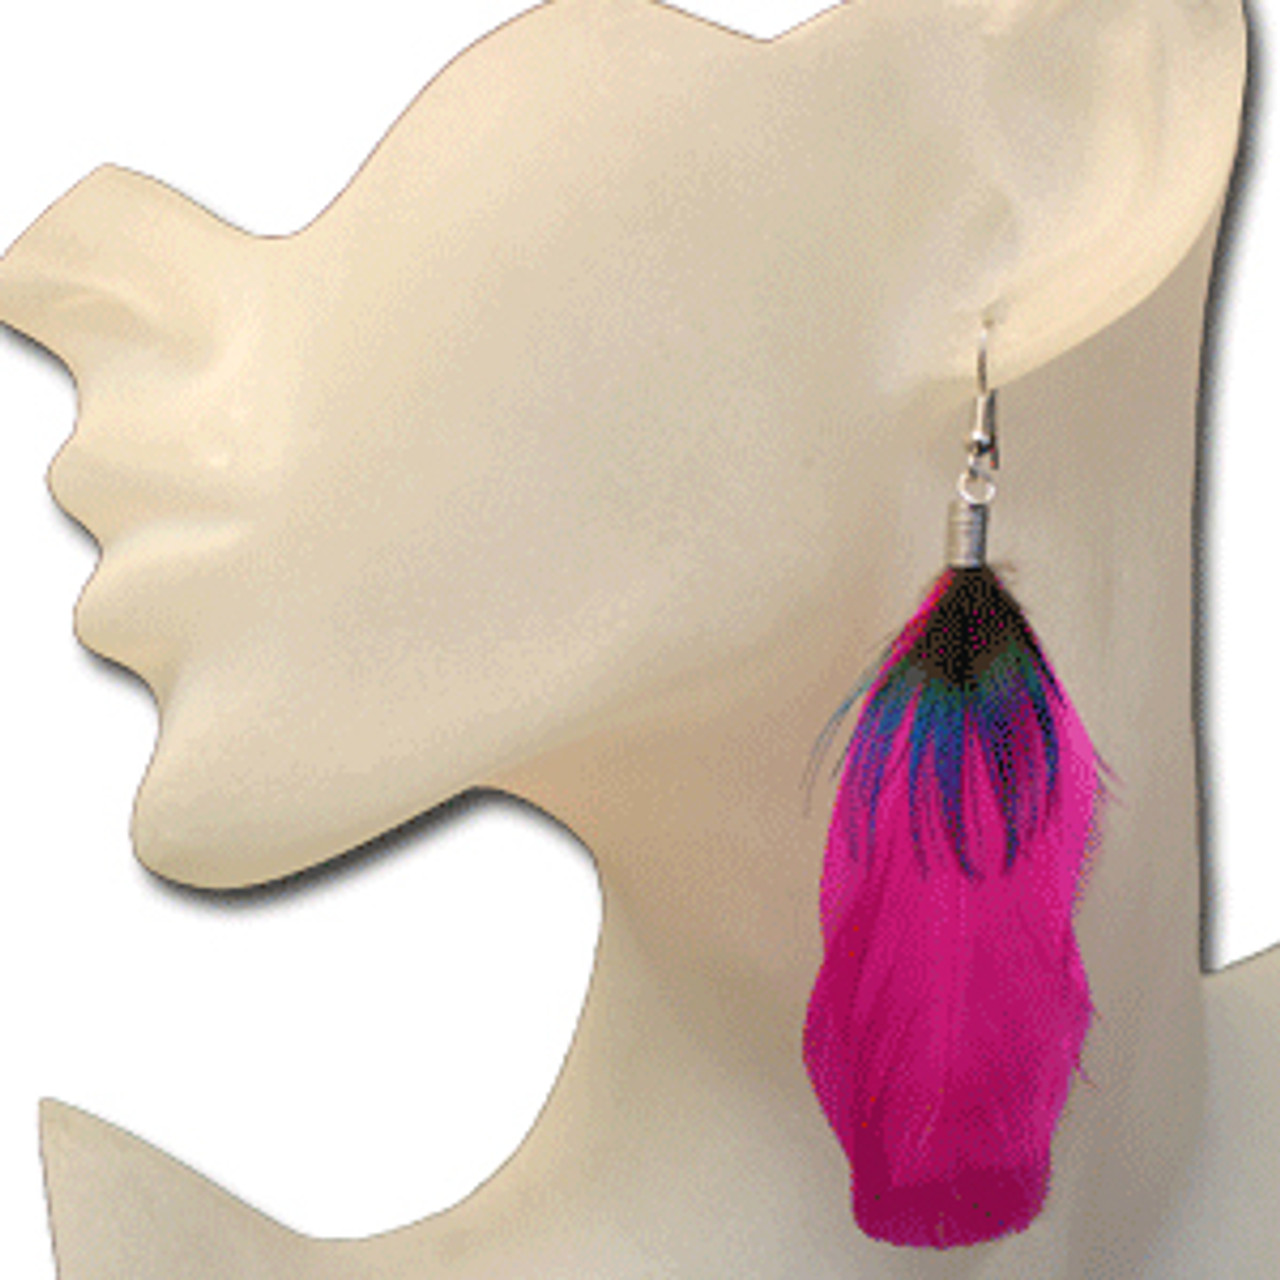 Hot pink feather earrings